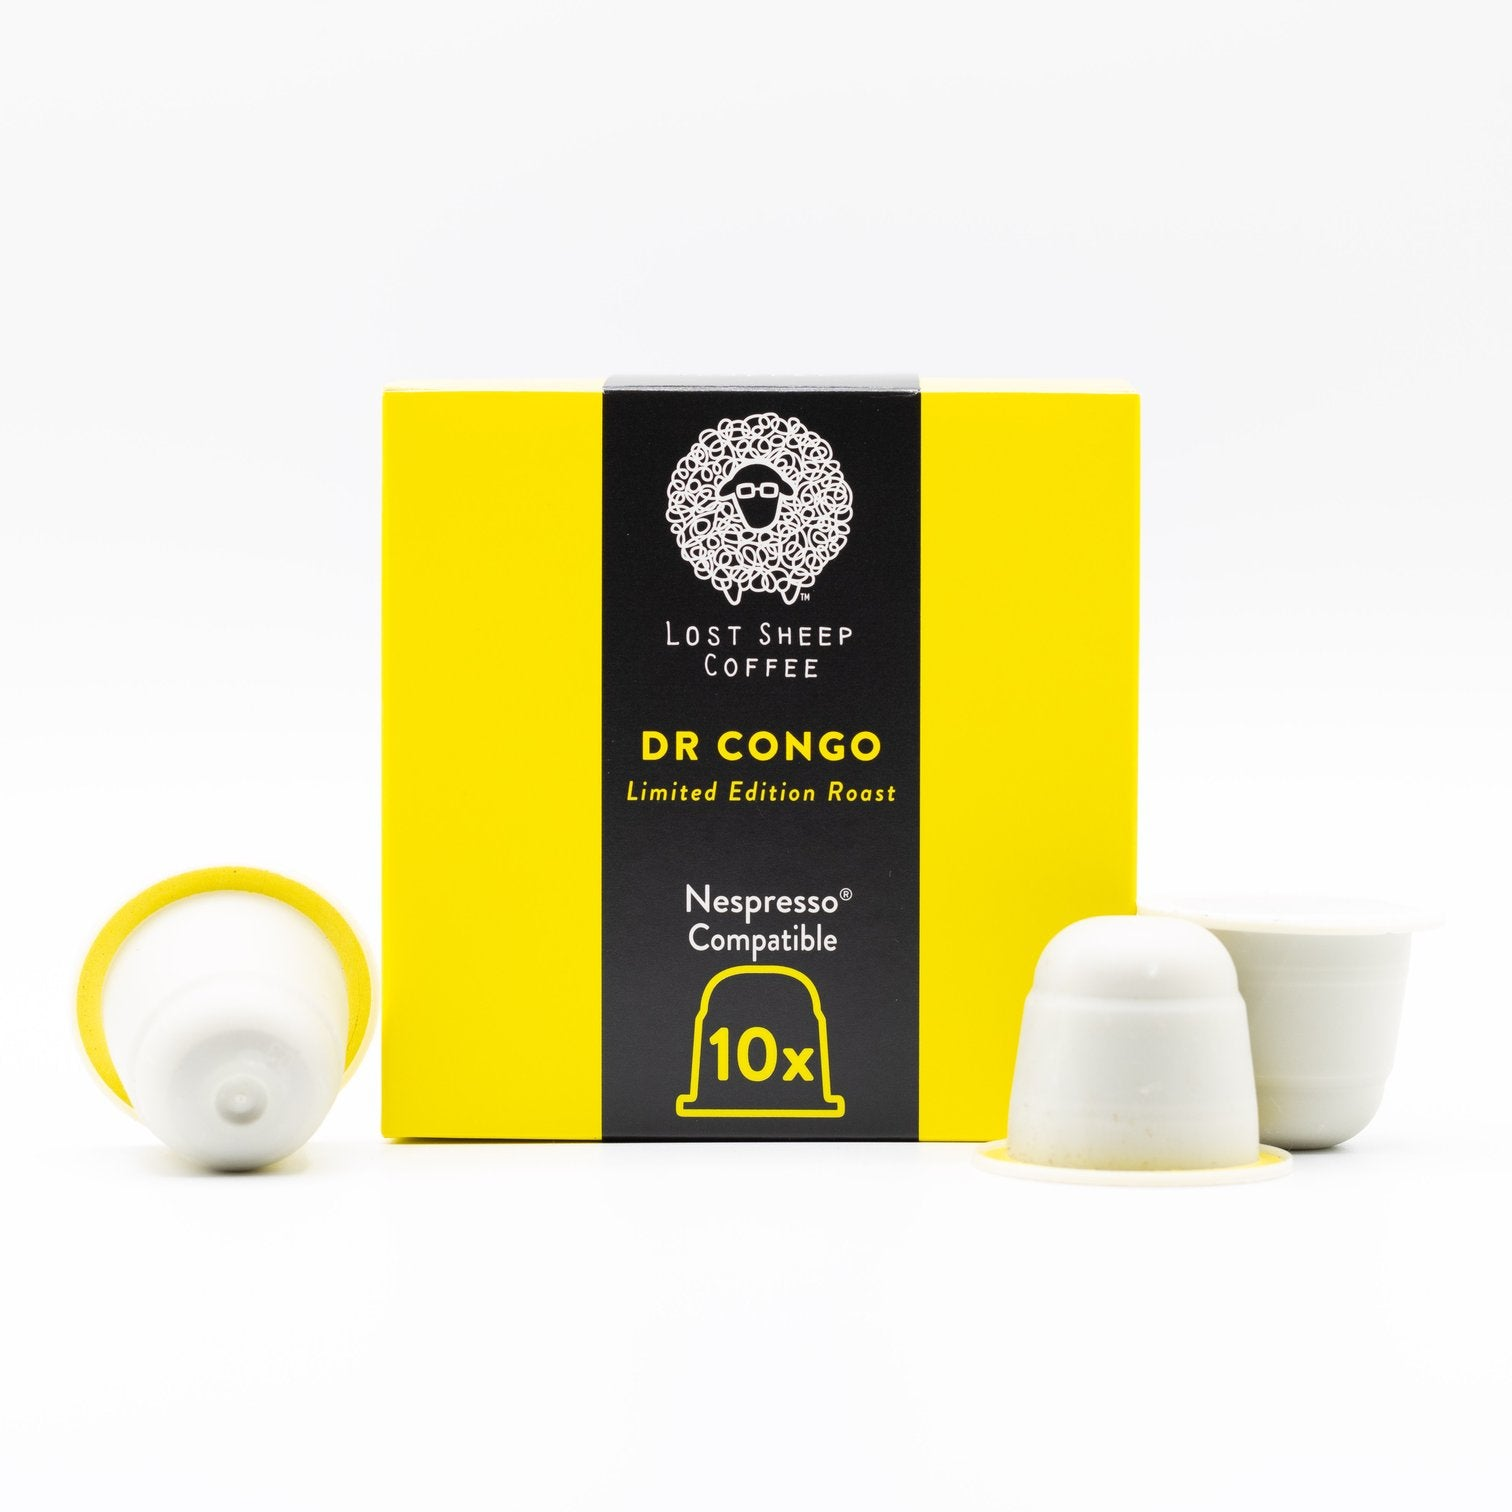 DR Congo - certified Organic | LIMITED EDITION | Compostable | Nespresso© Capsules, Floral Black Tea, pineapple acidity with a big plum jam sweetness! - natoorio